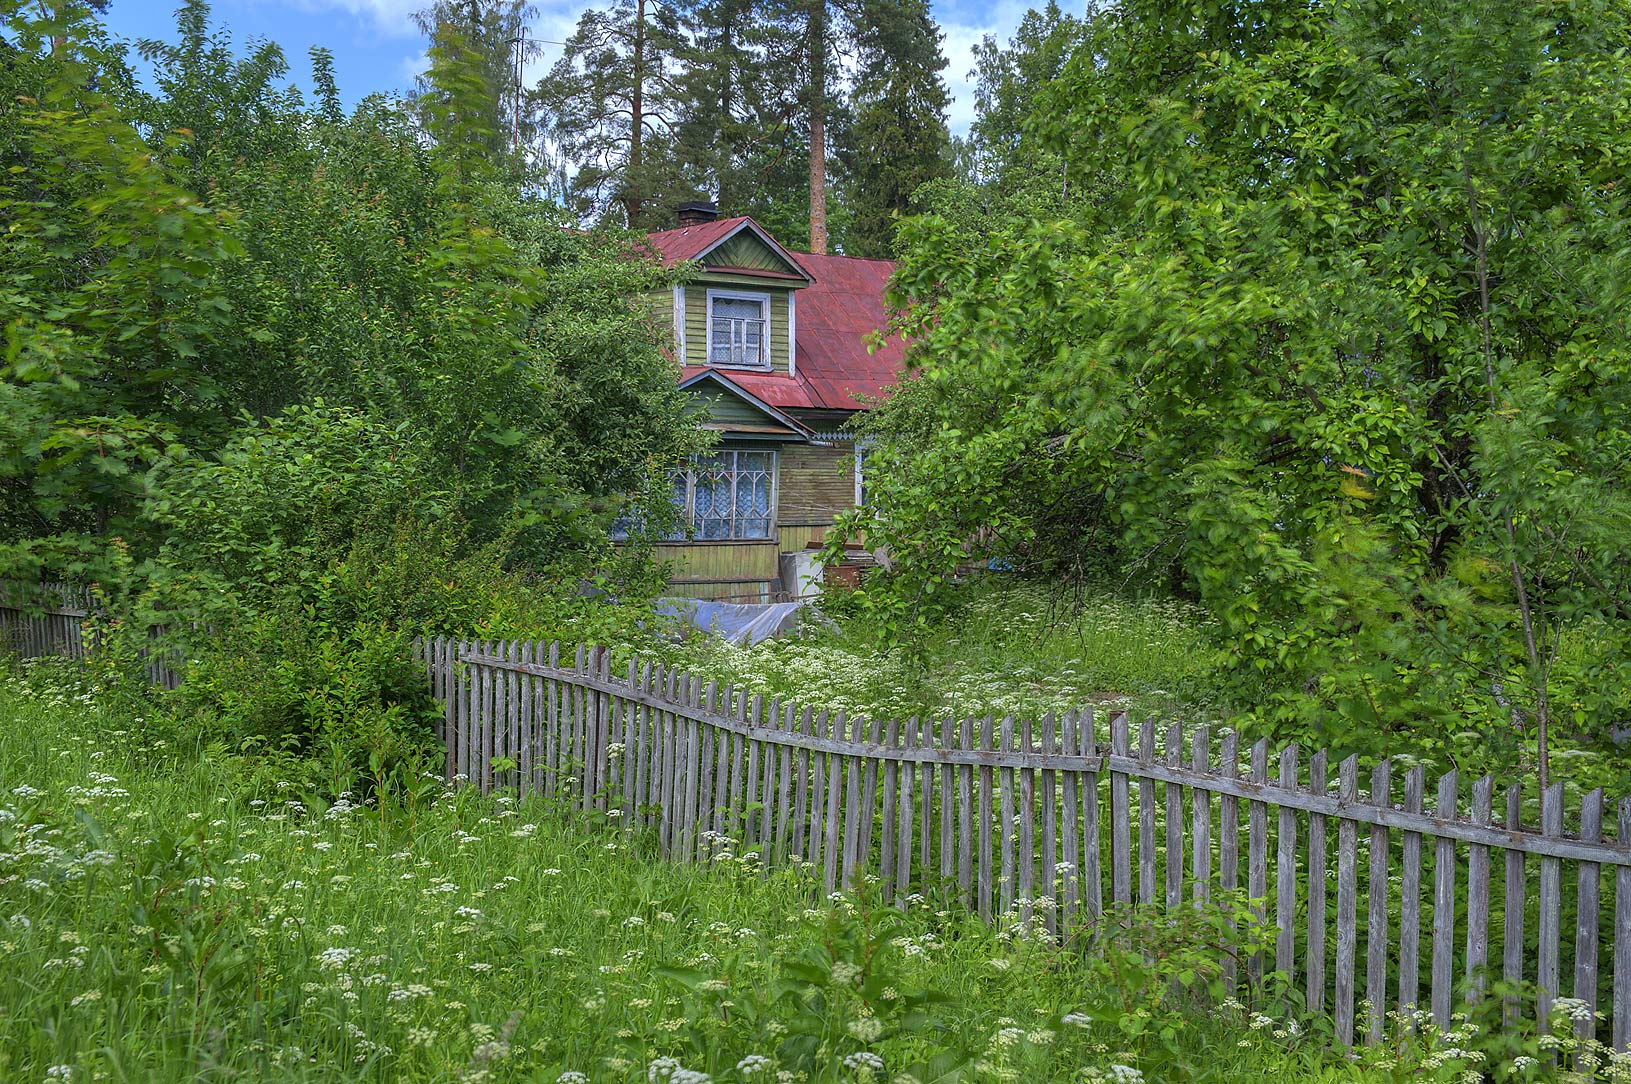 Dacha (summer house) in Siverskaya, 50 miles south from St.Petersburg. Russia